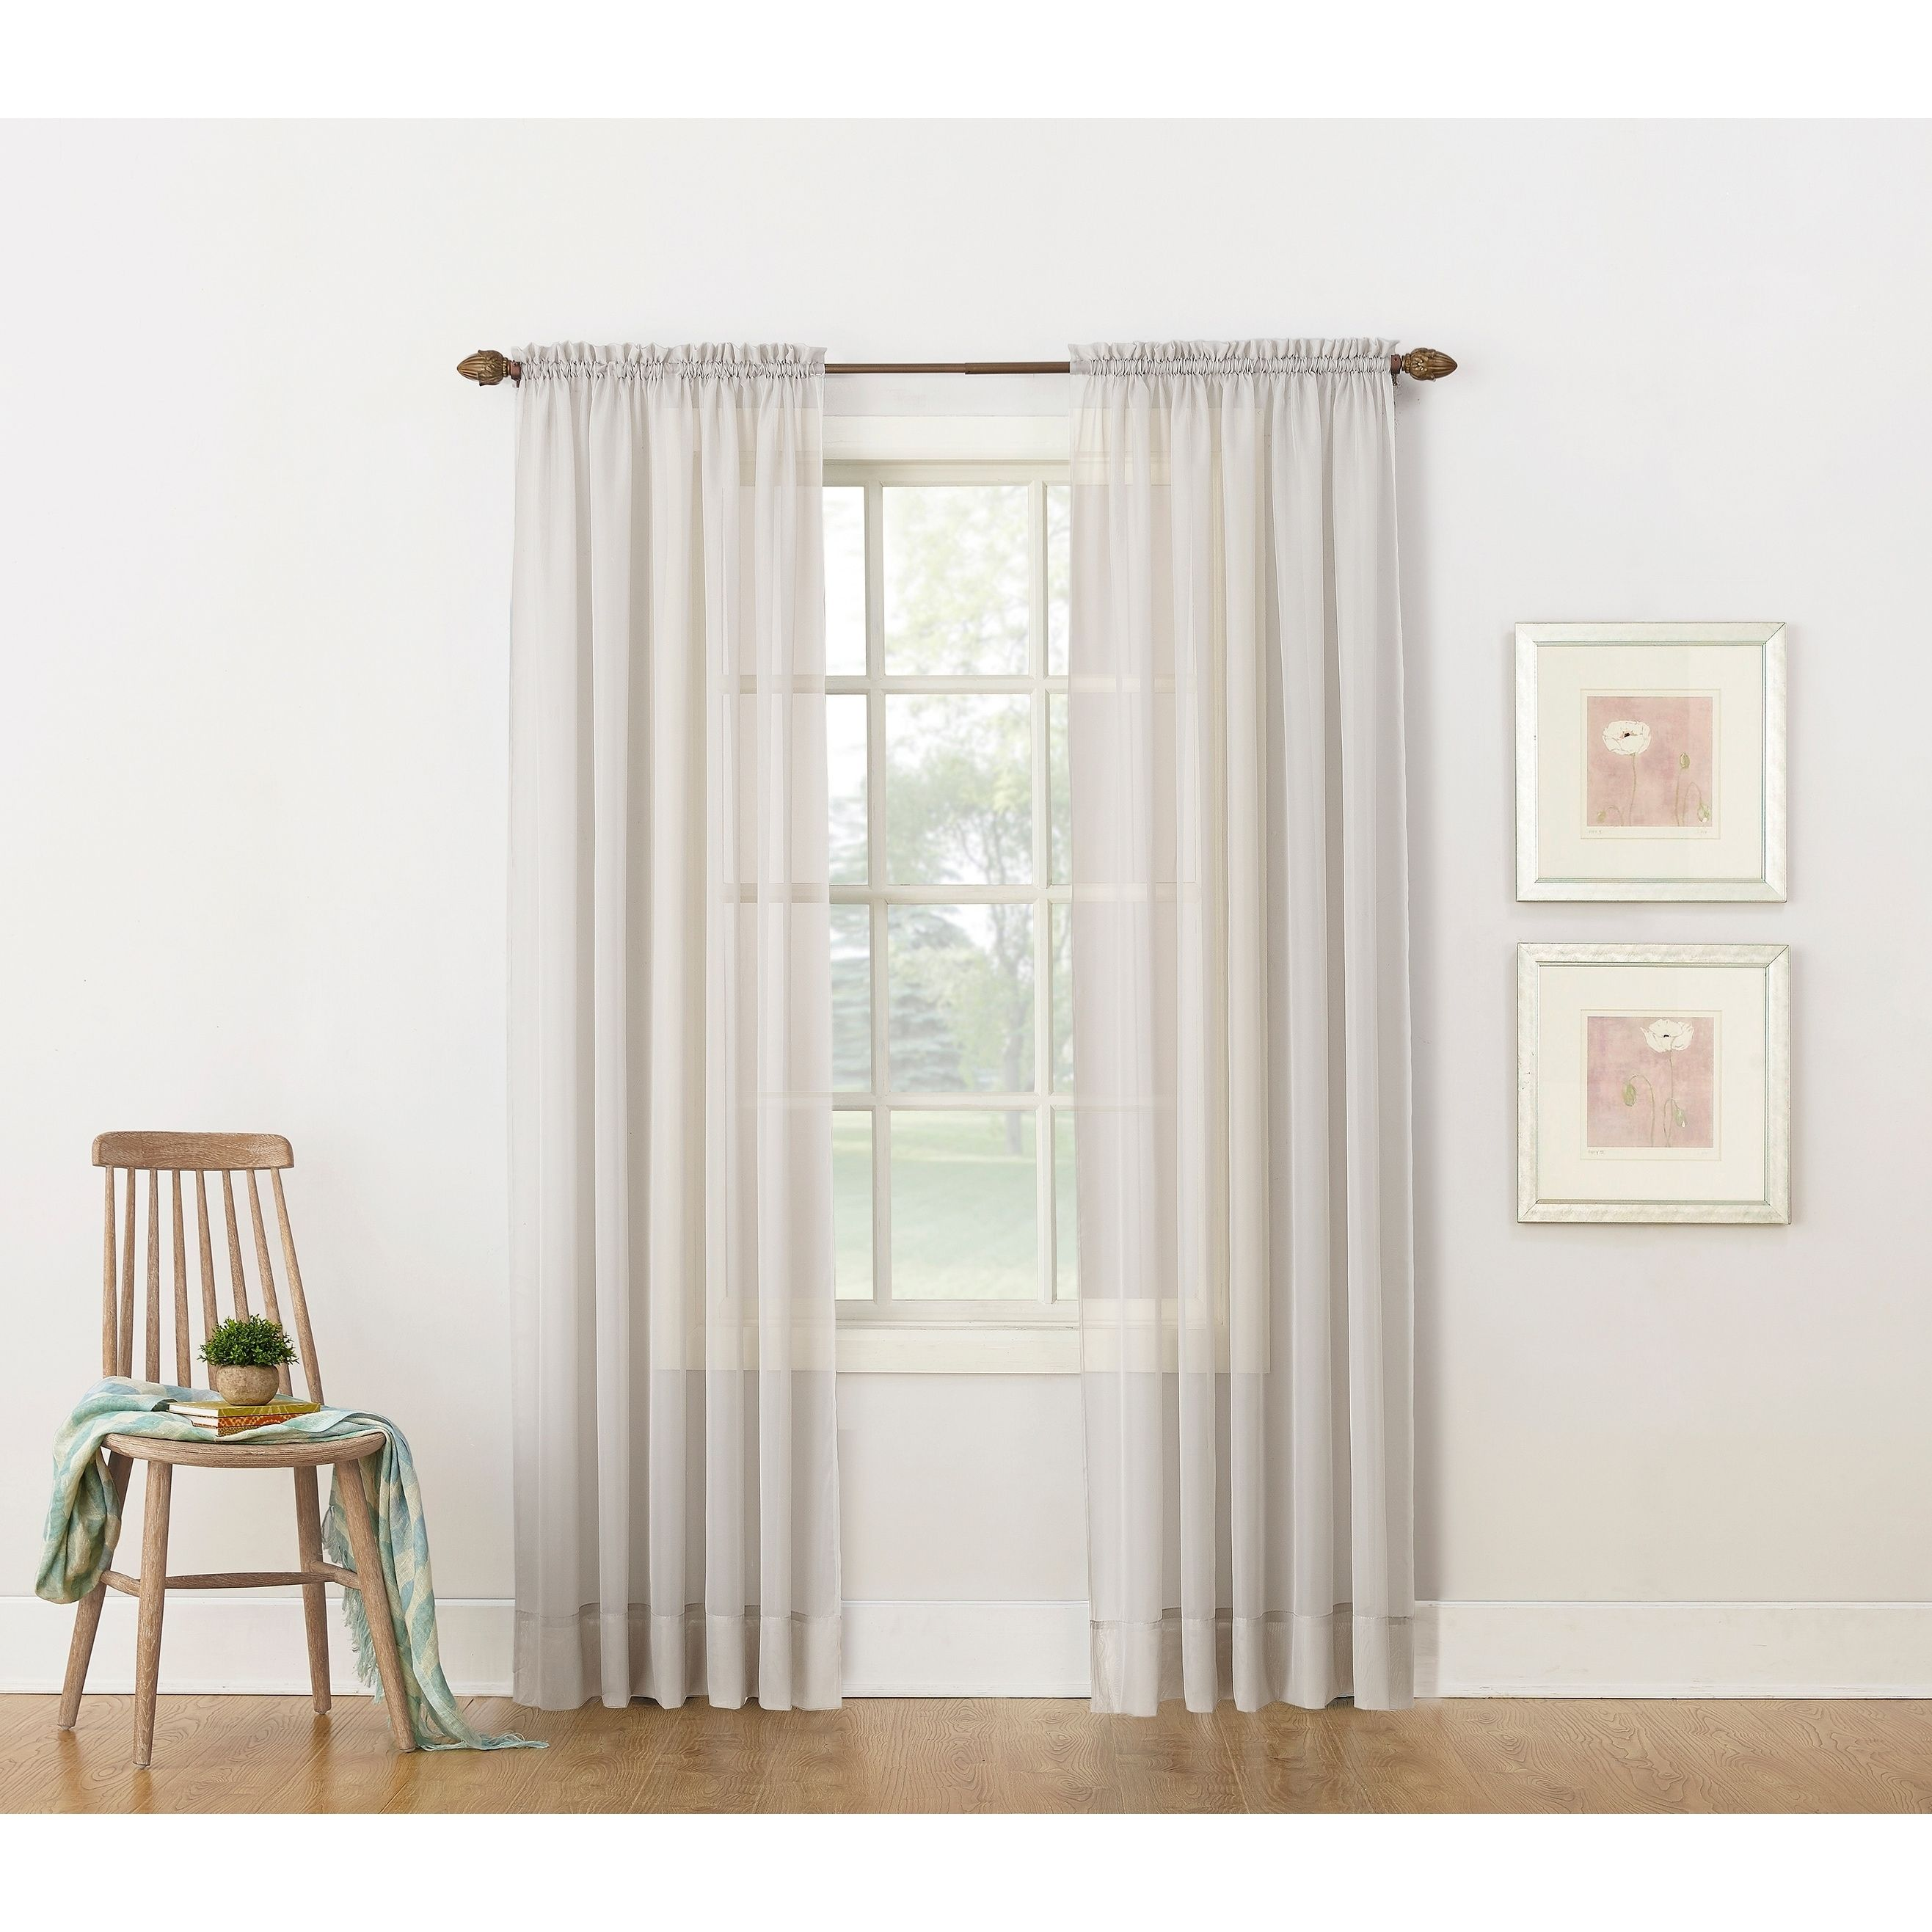 Overstock Com Online Shopping Bedding Furniture Electronics Jewelry Clothing More Rod Pocket Curtain Panels Panel Curtains Rod Pocket Curtains